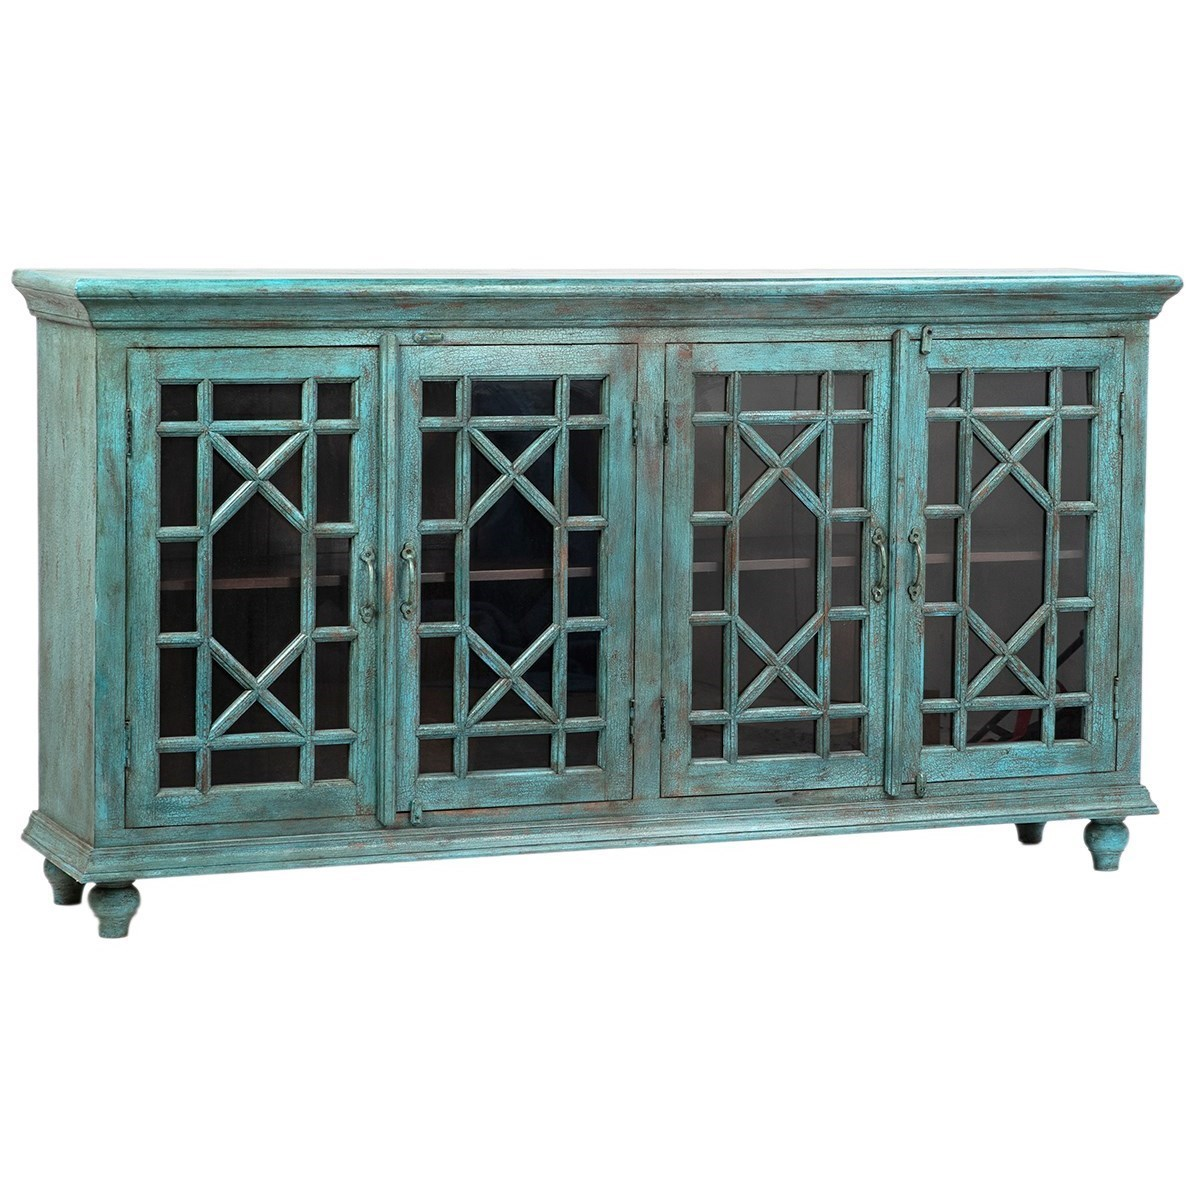 Merveilleux Dovetail Furniture Sideboards/Buffets Zamora Teal Crackle Sideboard